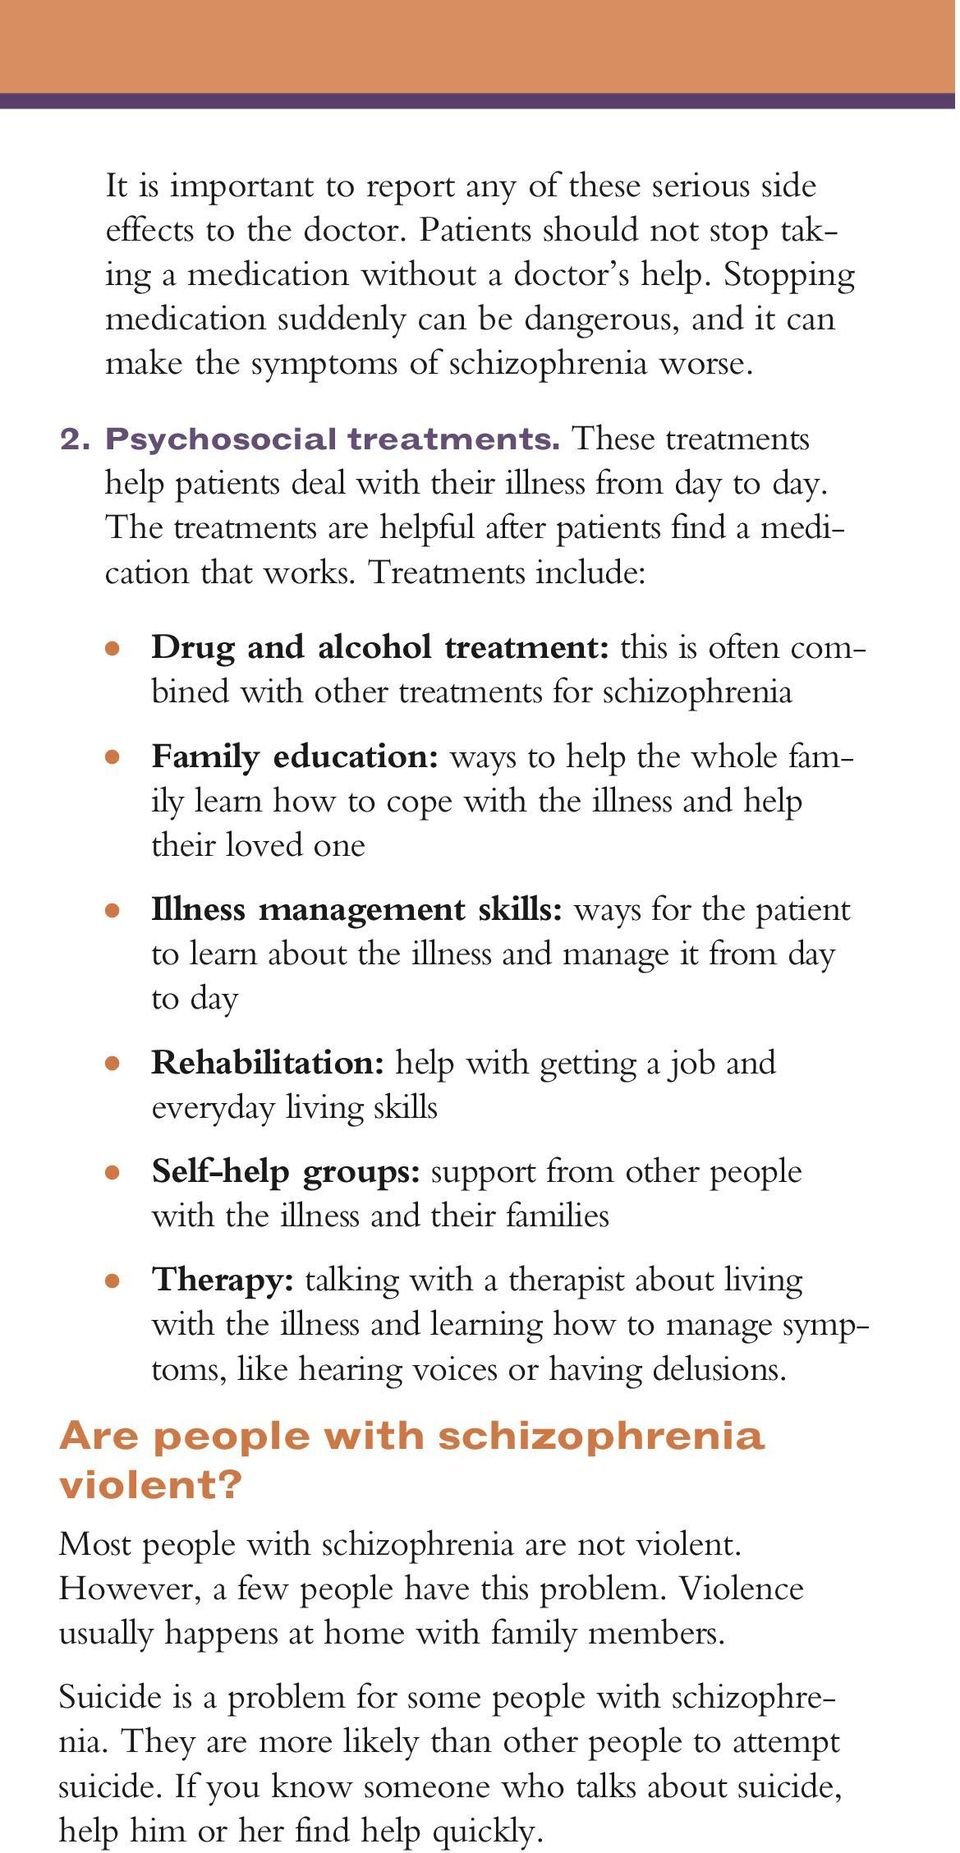 The treatments are helpful after patients find a medication that works.